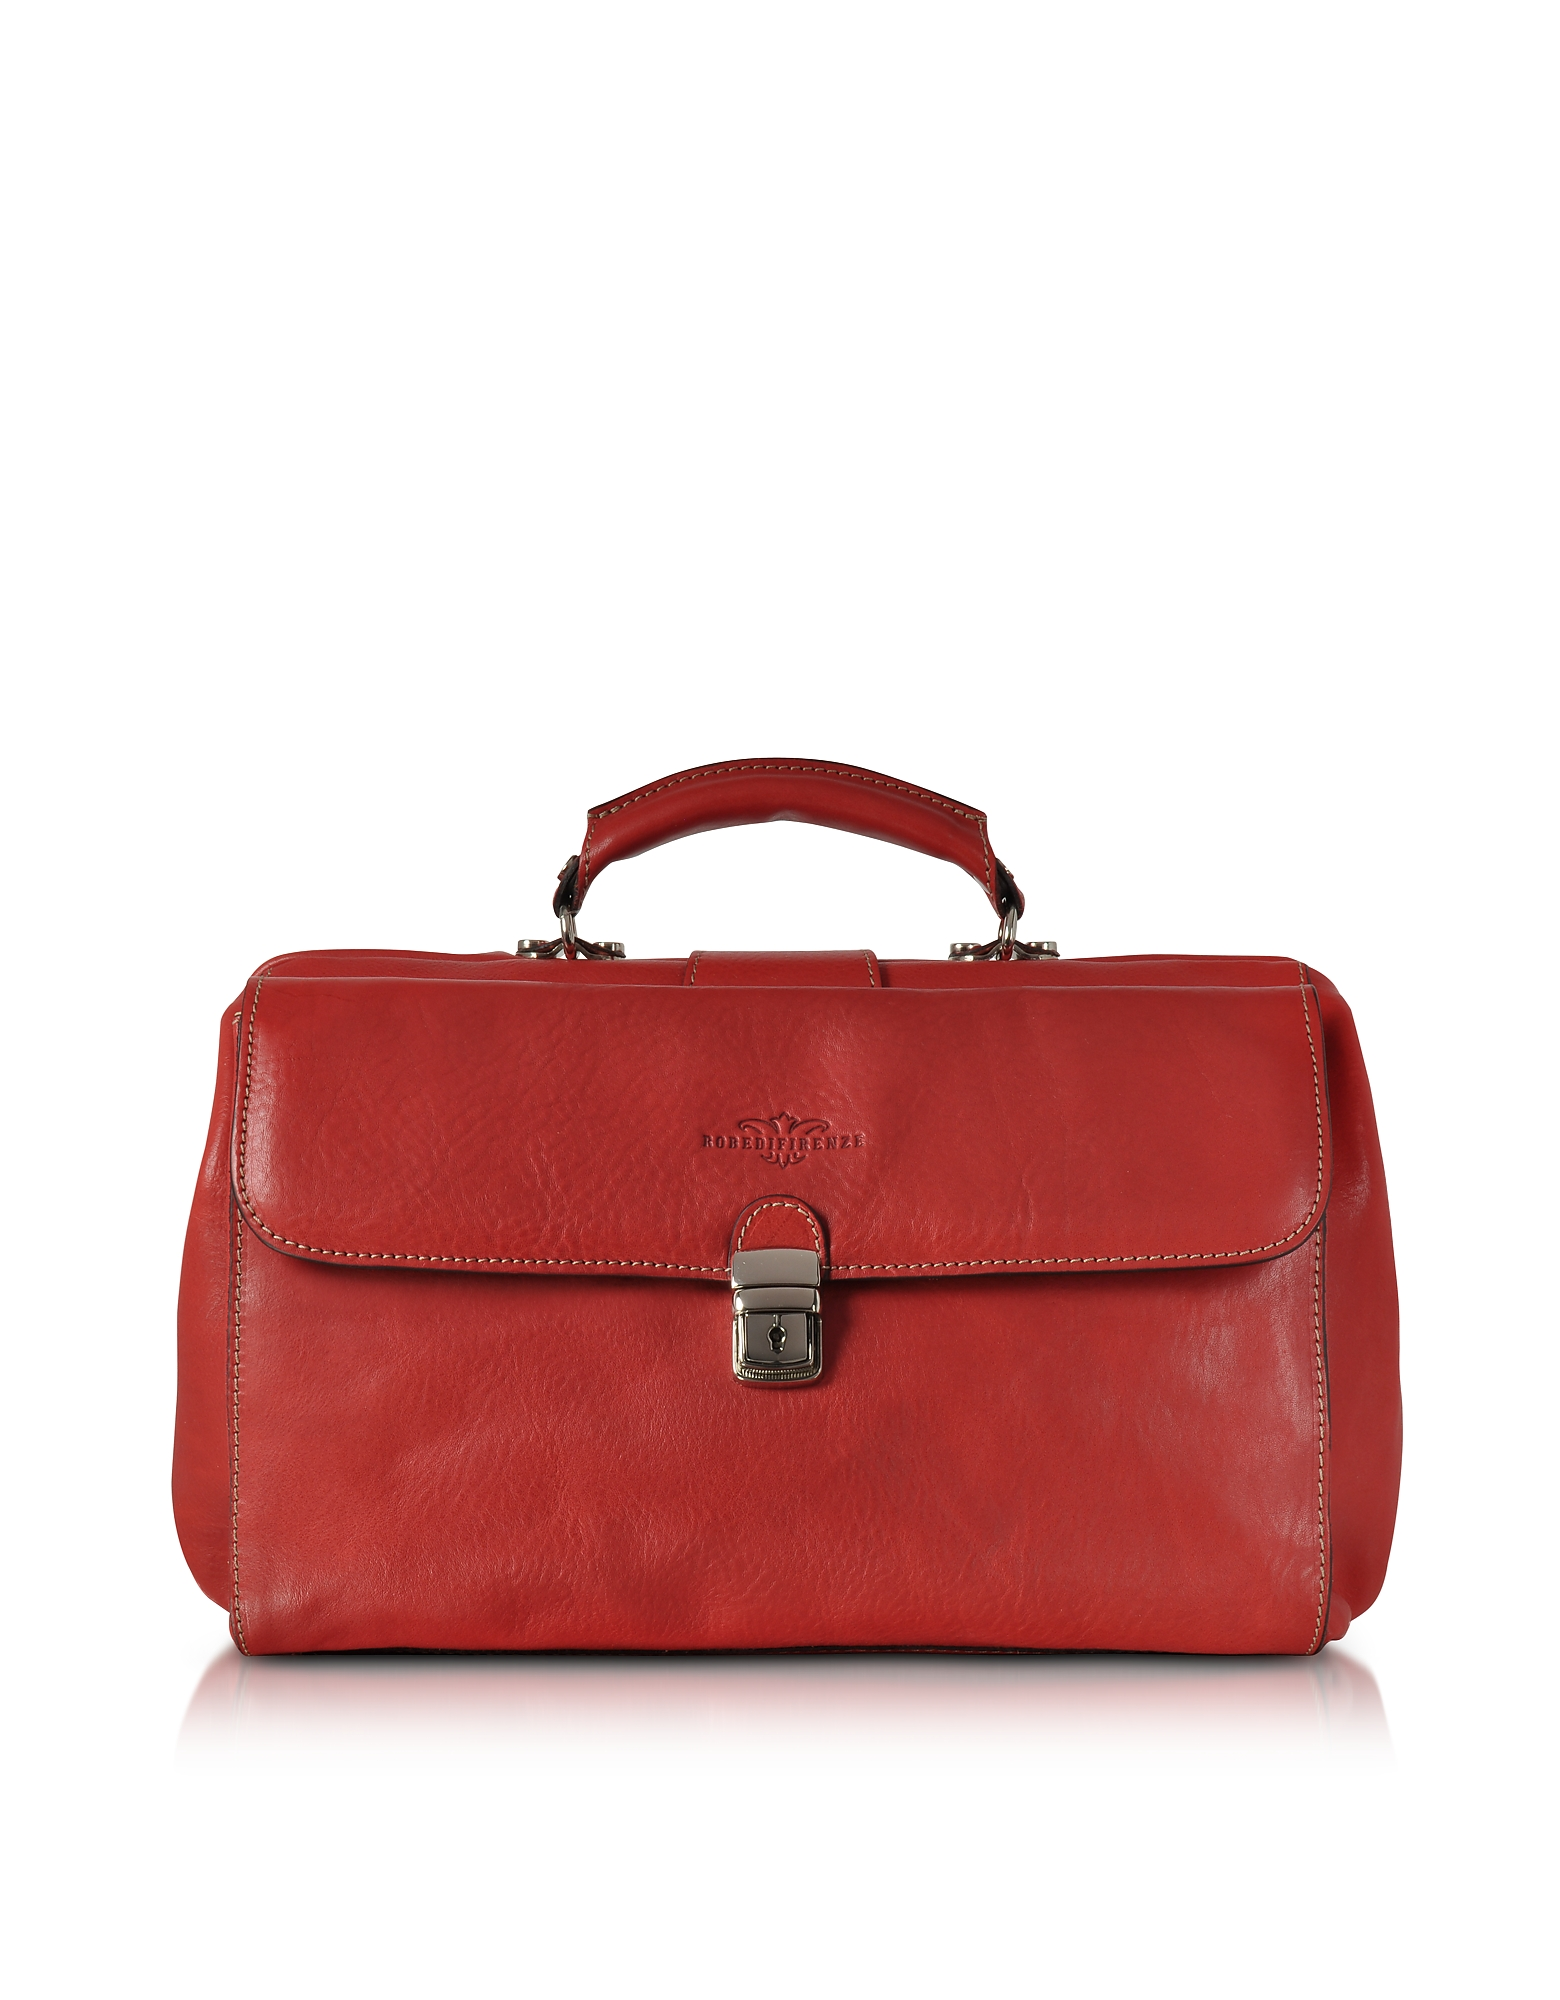 Robe di Firenze Briefcases, Red Medium Genuine Italian Leather Doctor Bag